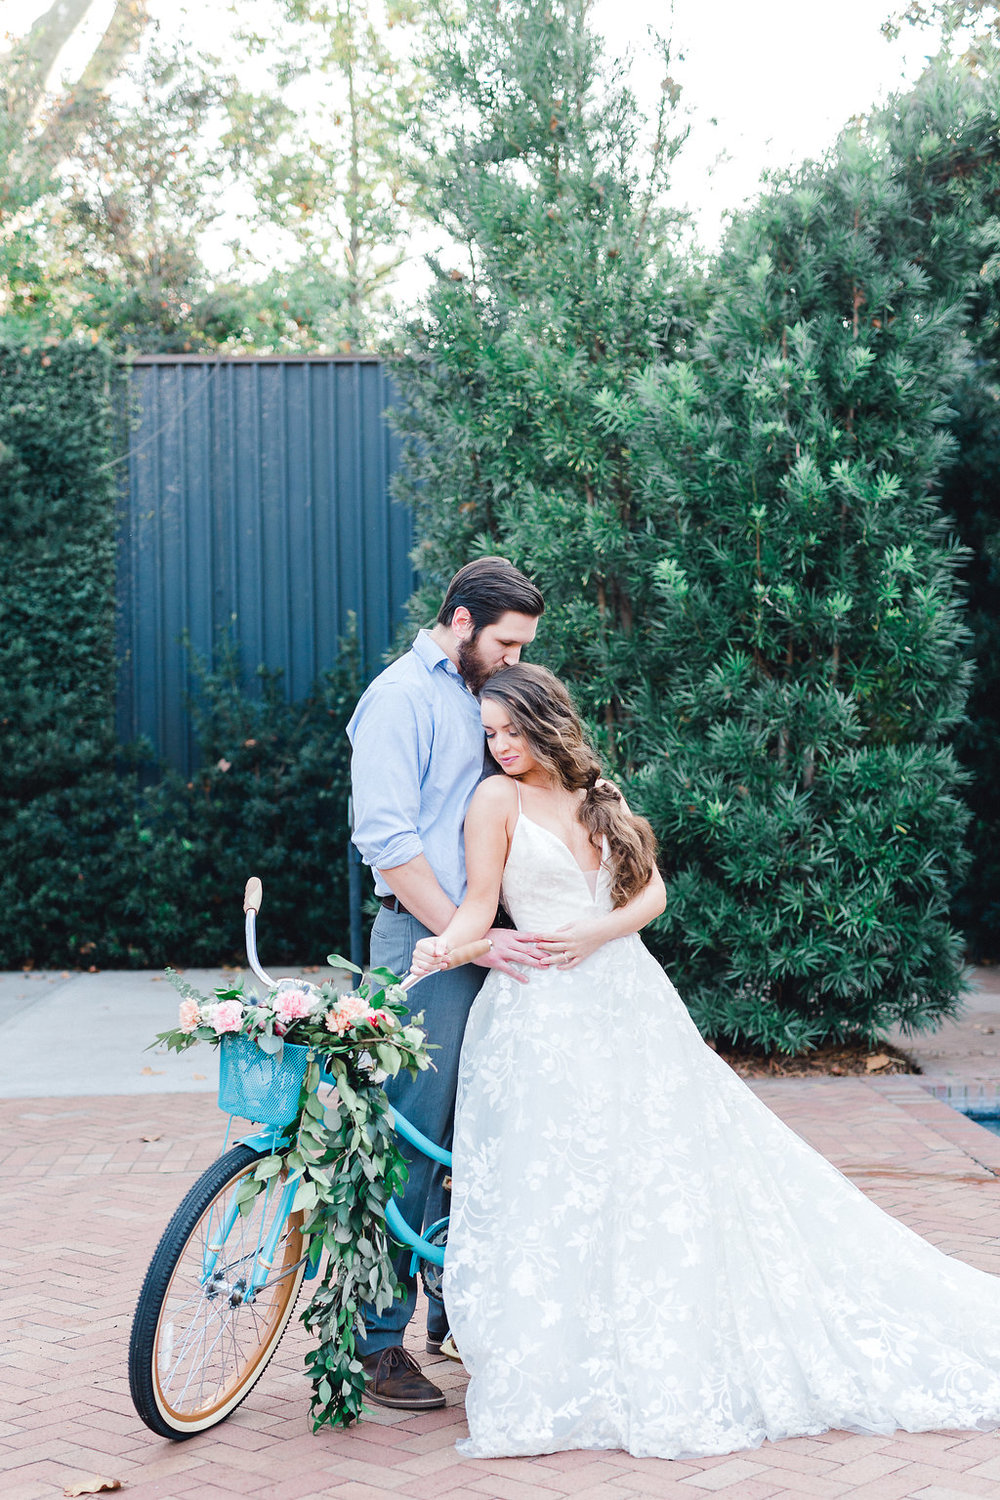 ships-of-the-sea-wedding-bicycle-getaway-ivory-and-beau-savannah-wedding-florist-savannah-weddings-savannah-florist-bridal-shop-bridal-boutique-blush-by-hayley-paige.JPG